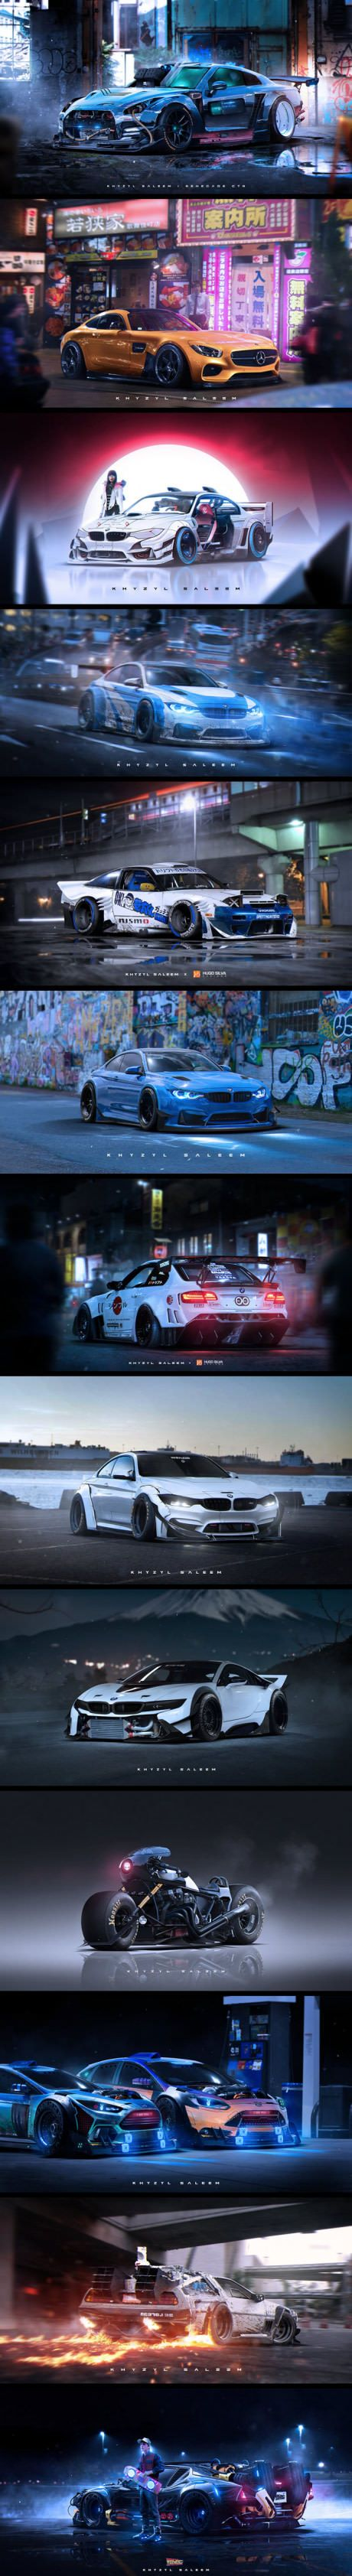 This Japanese artist is the publisher of EA Games: Need For Speed, these are some of his works